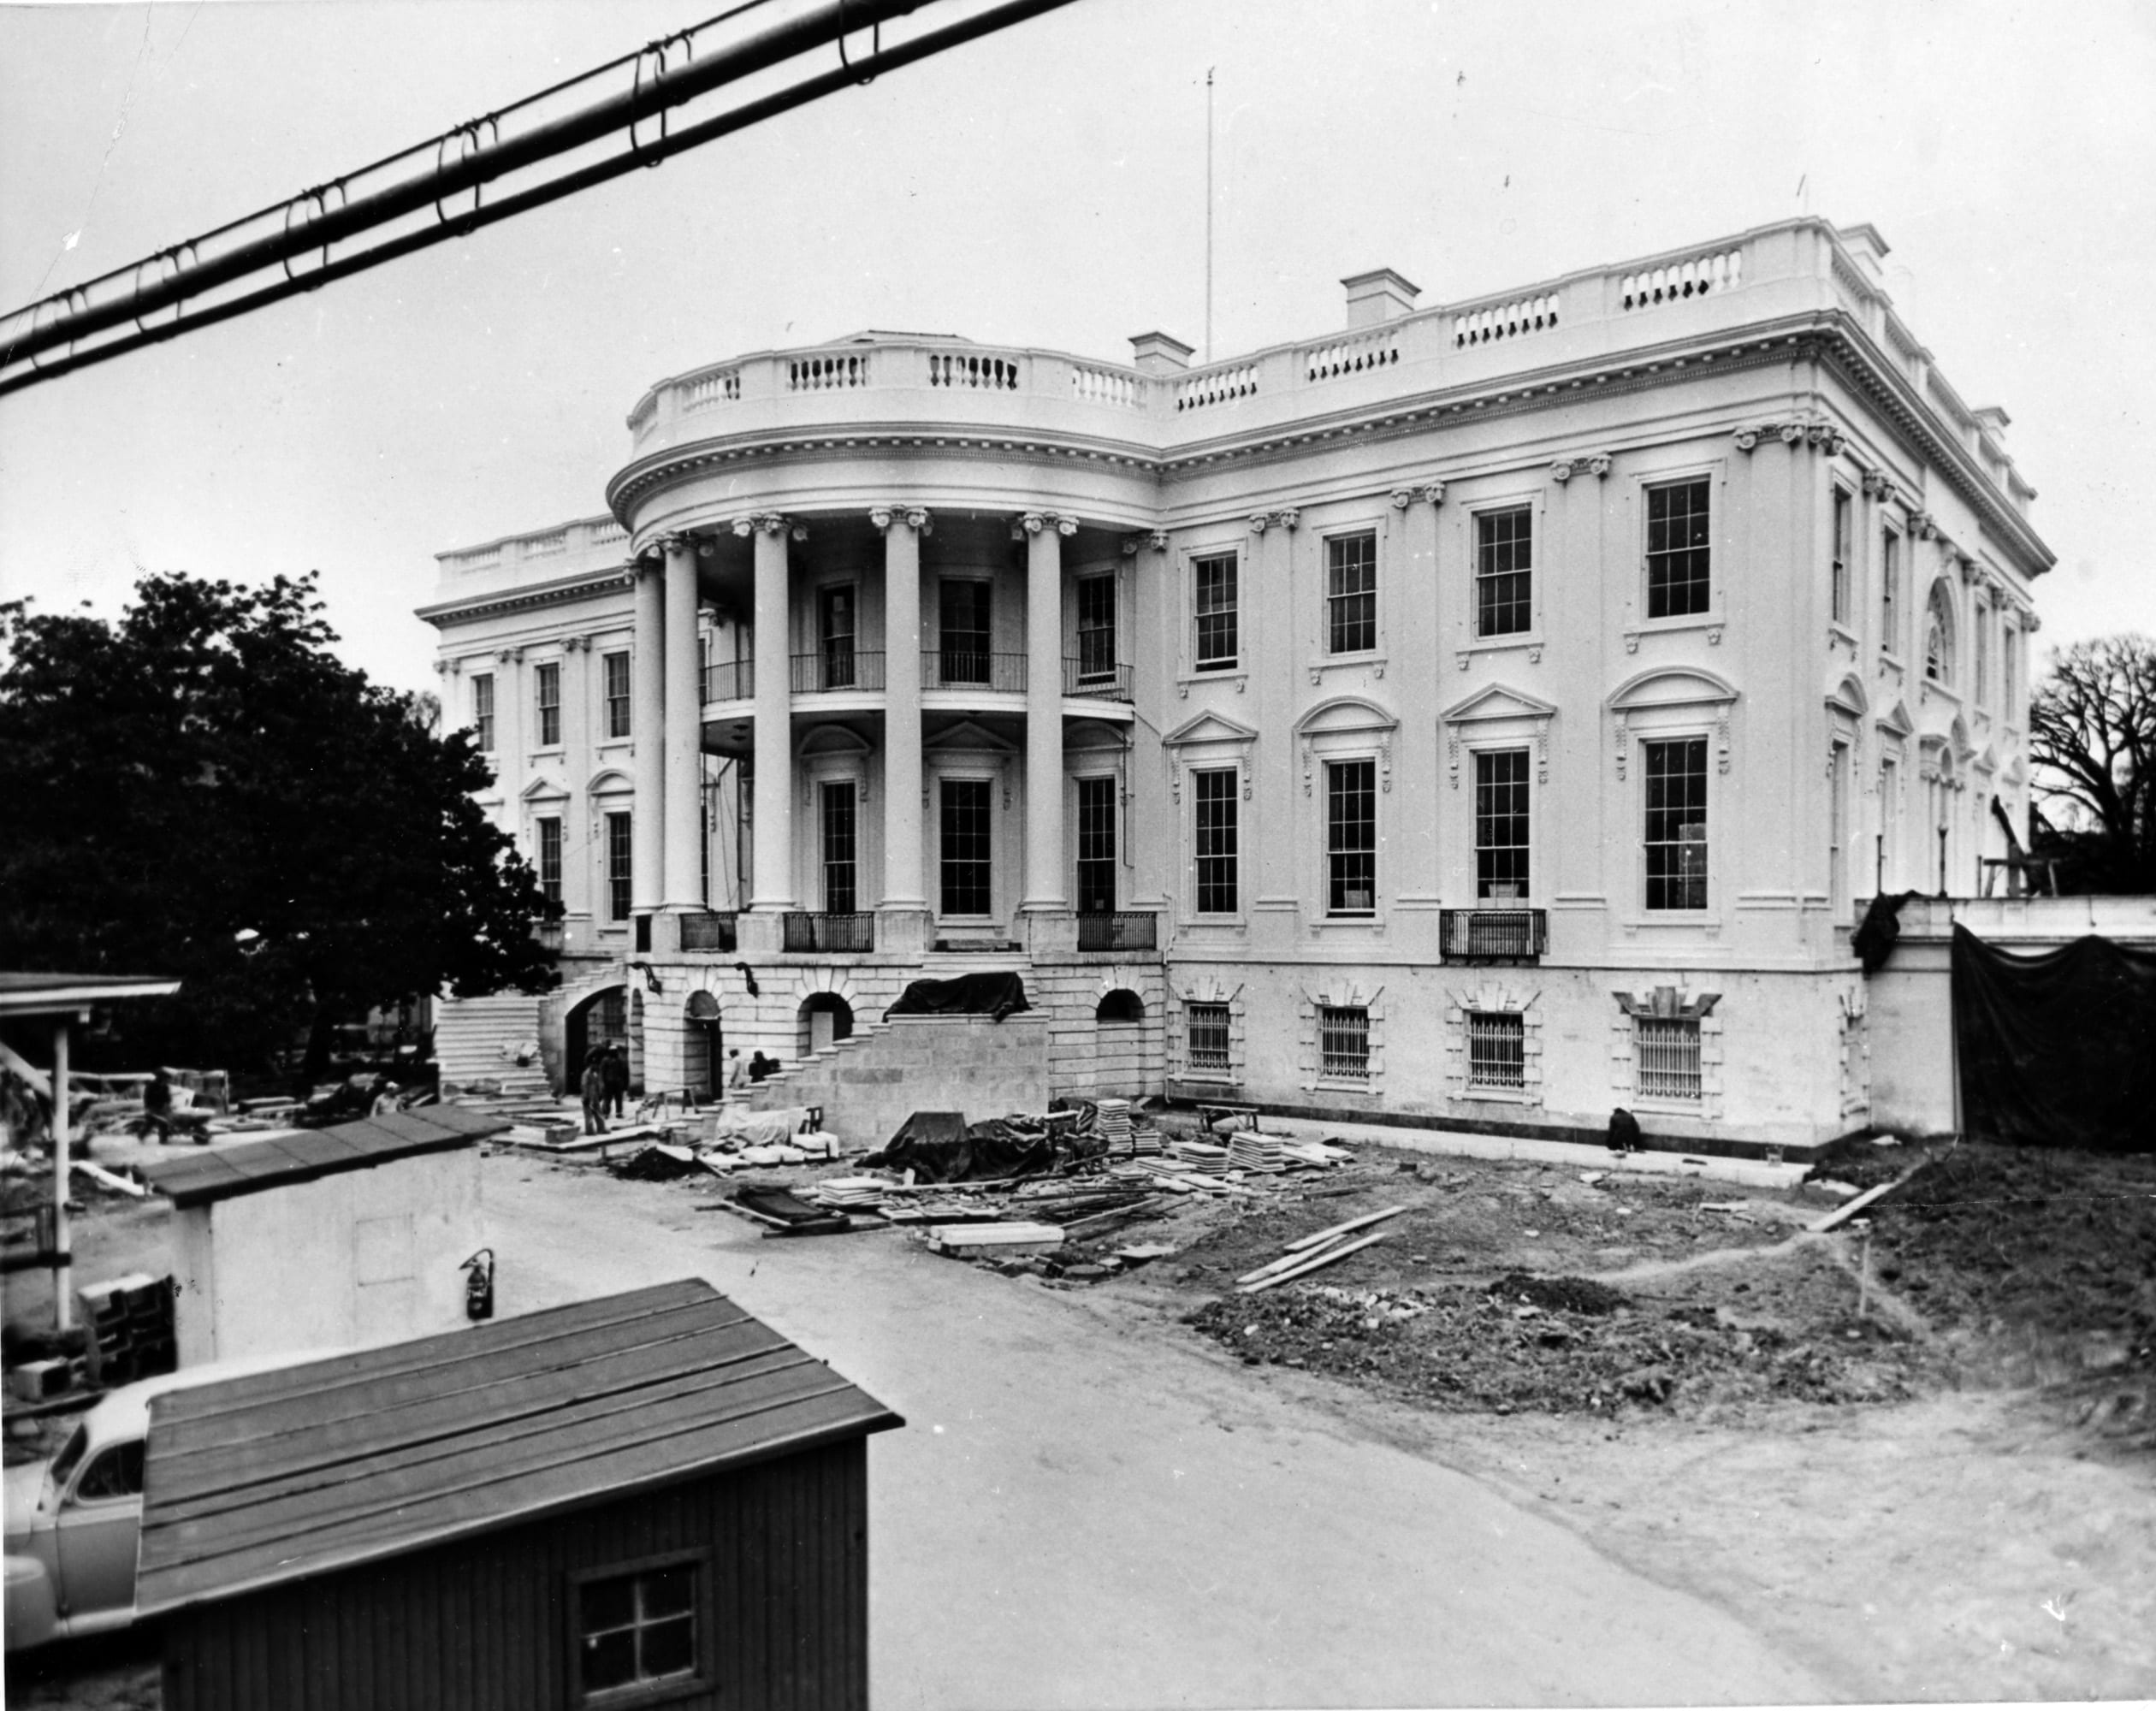 Exterior Photos of Truman Reconstruction of White House